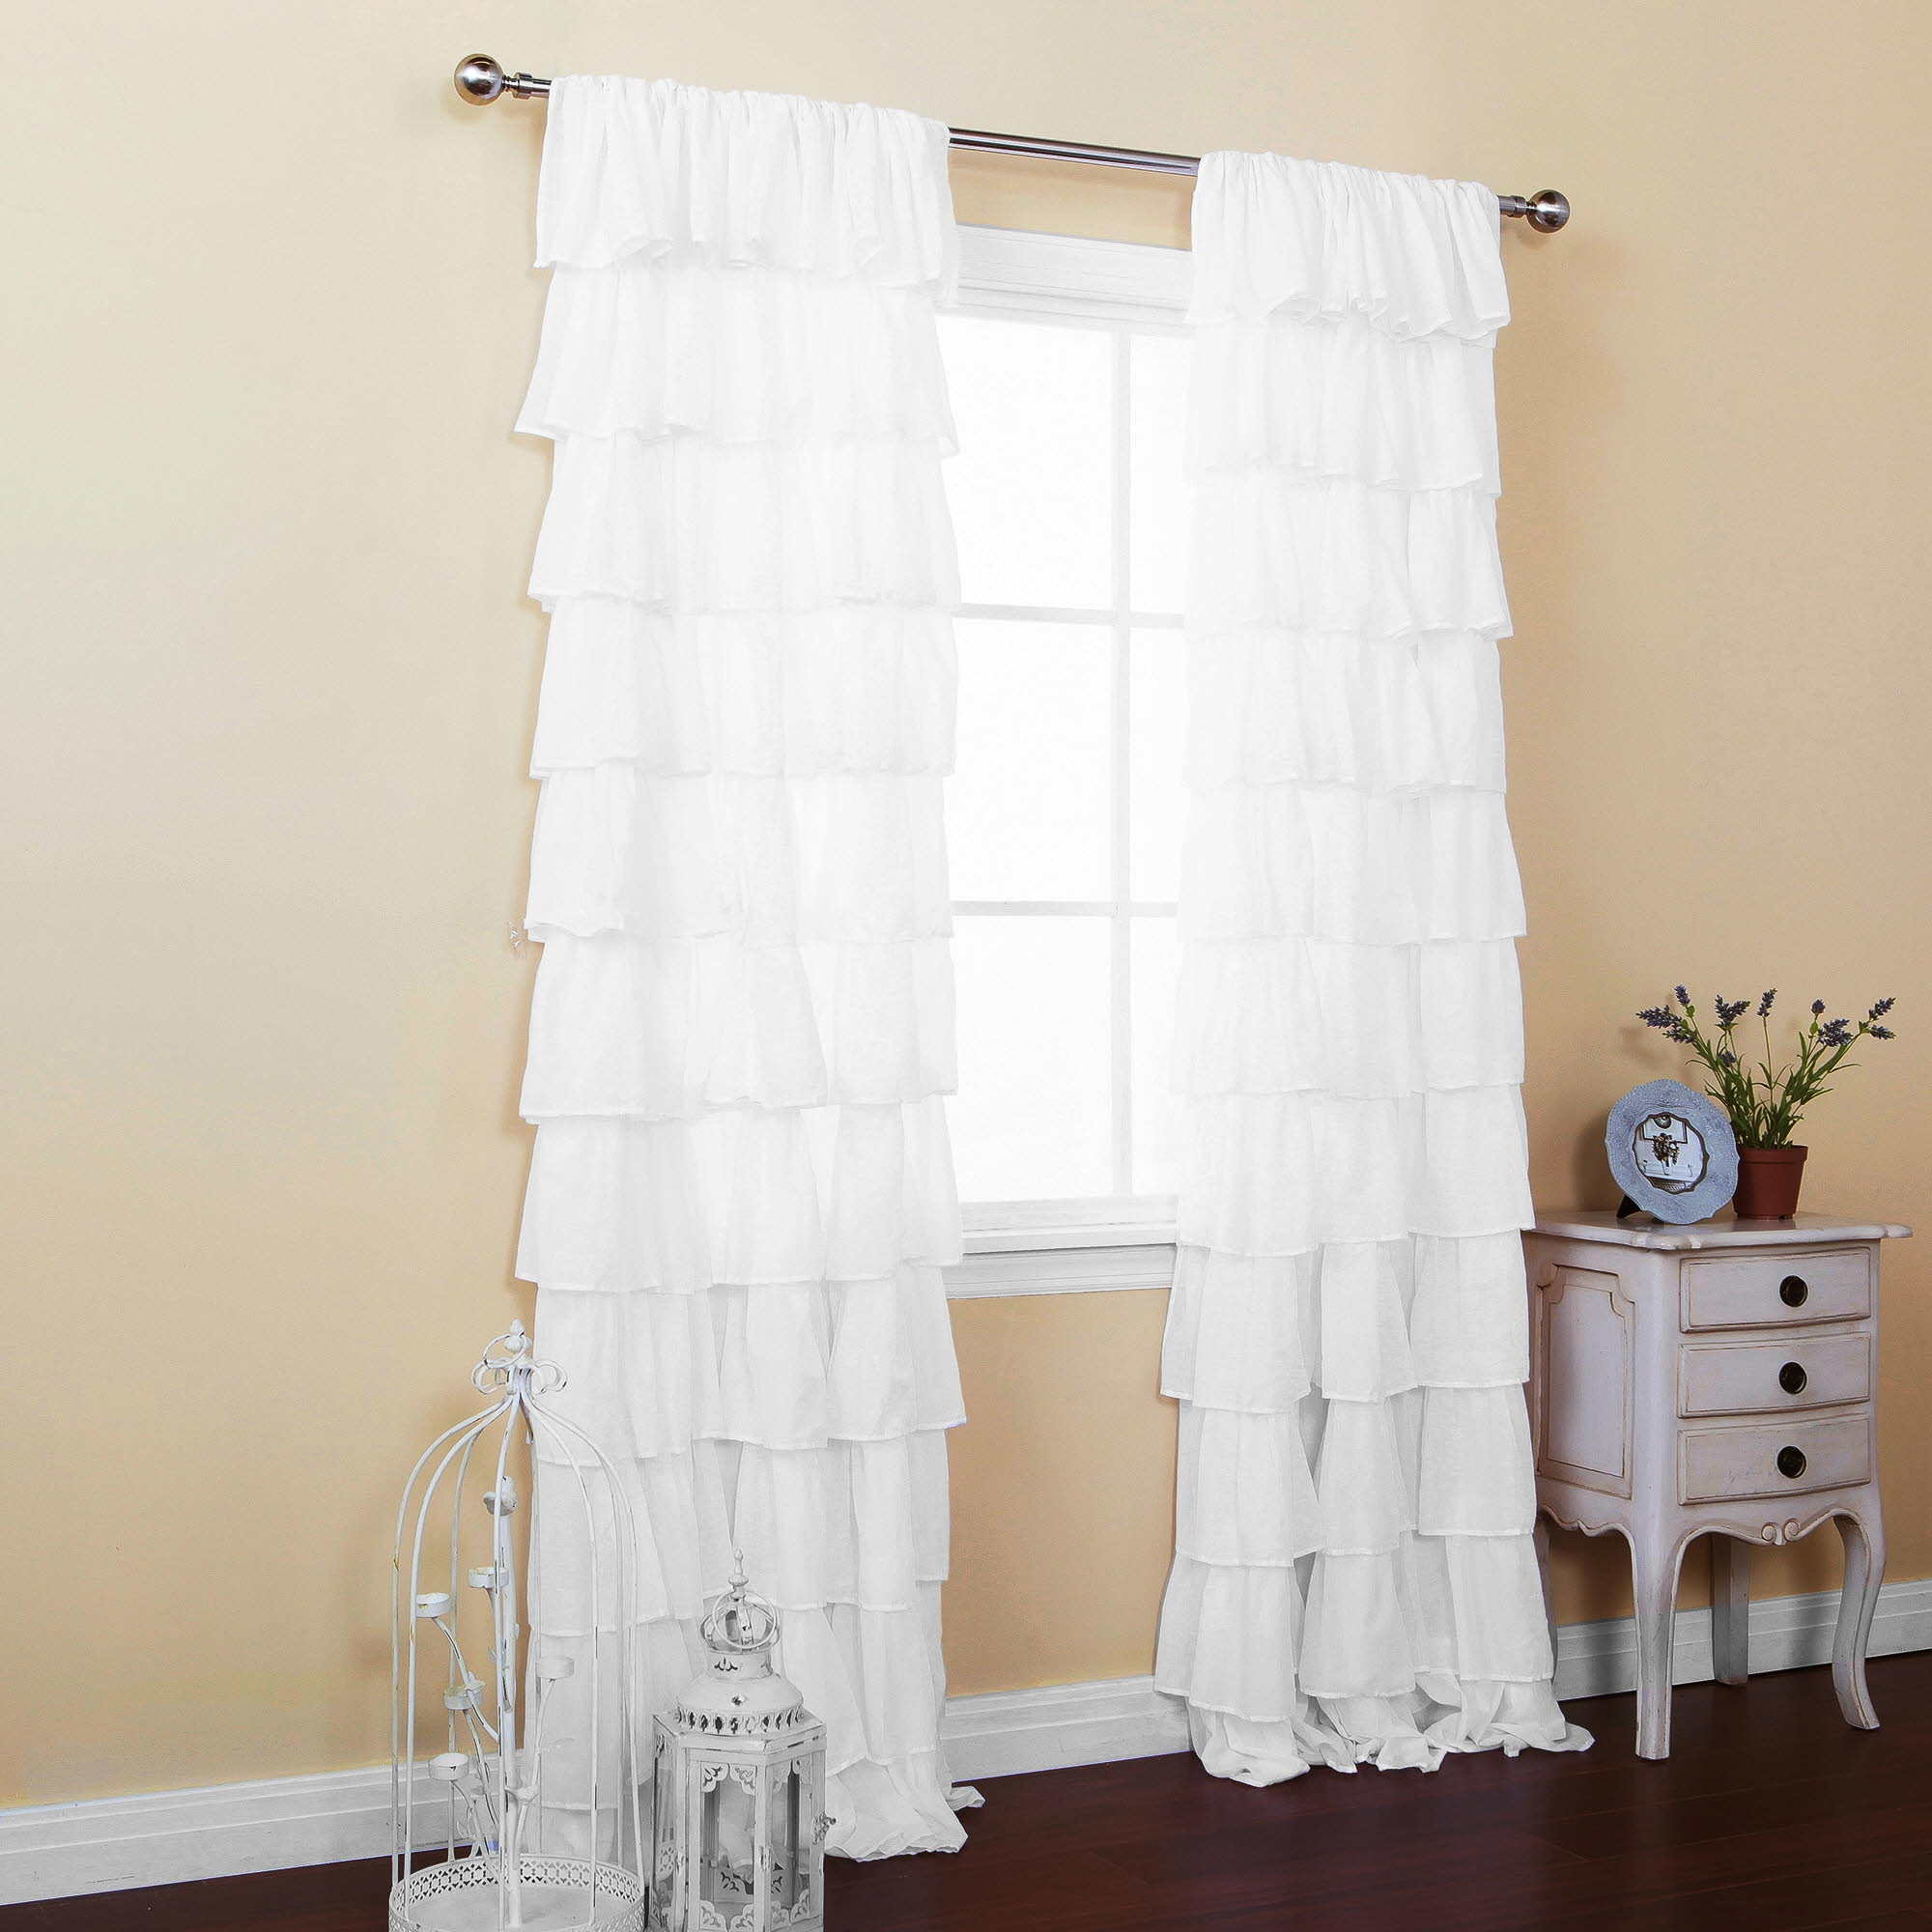 Curtains White Ruffle Curtain Panel Shower Curtain Ruffle Within White Ruffle Curtains (View 16 of 25)